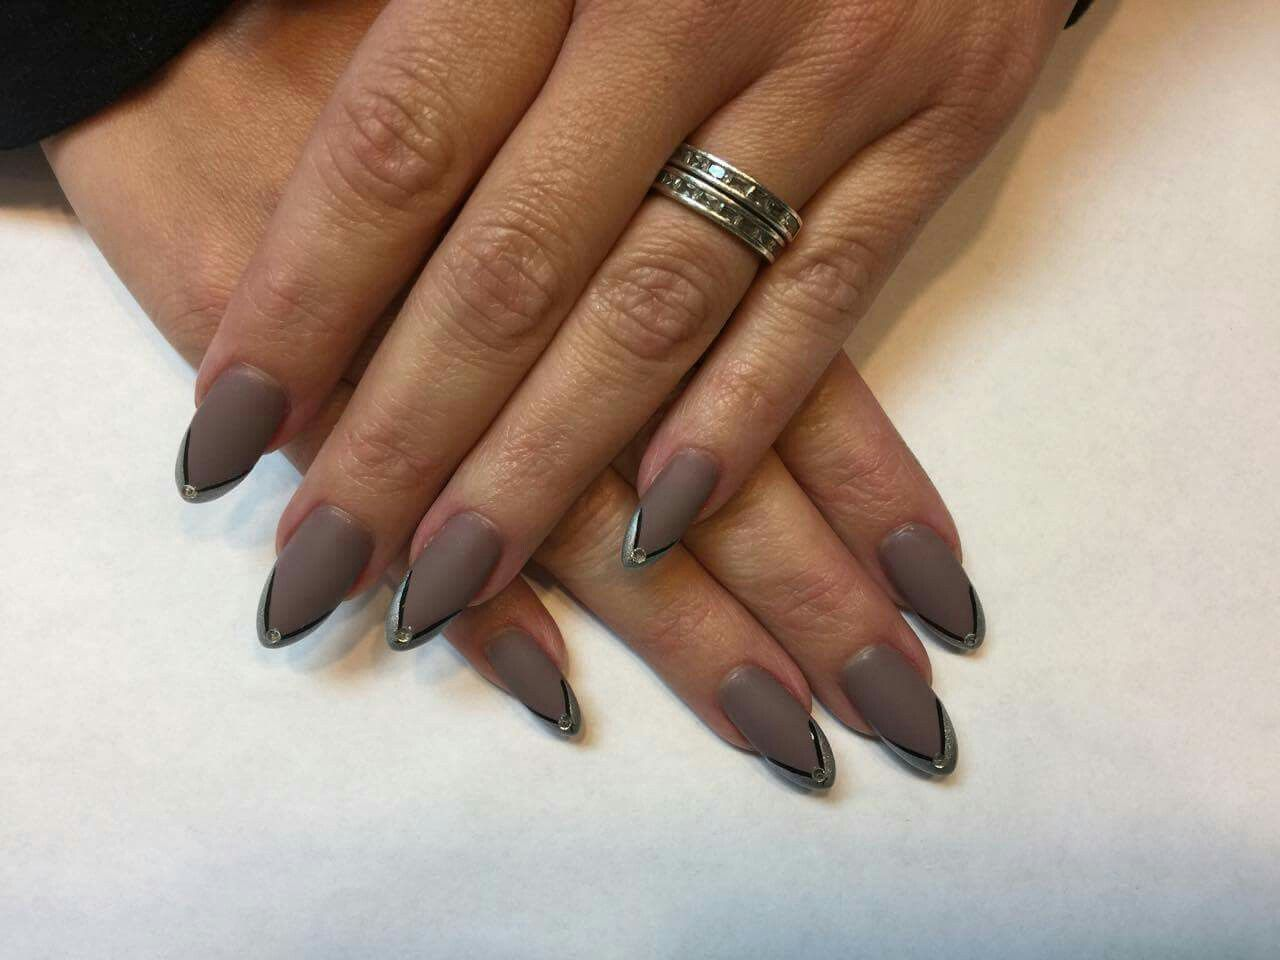 almond shaped, matte nails, chrome tips. gel polish, acrylic nails ...